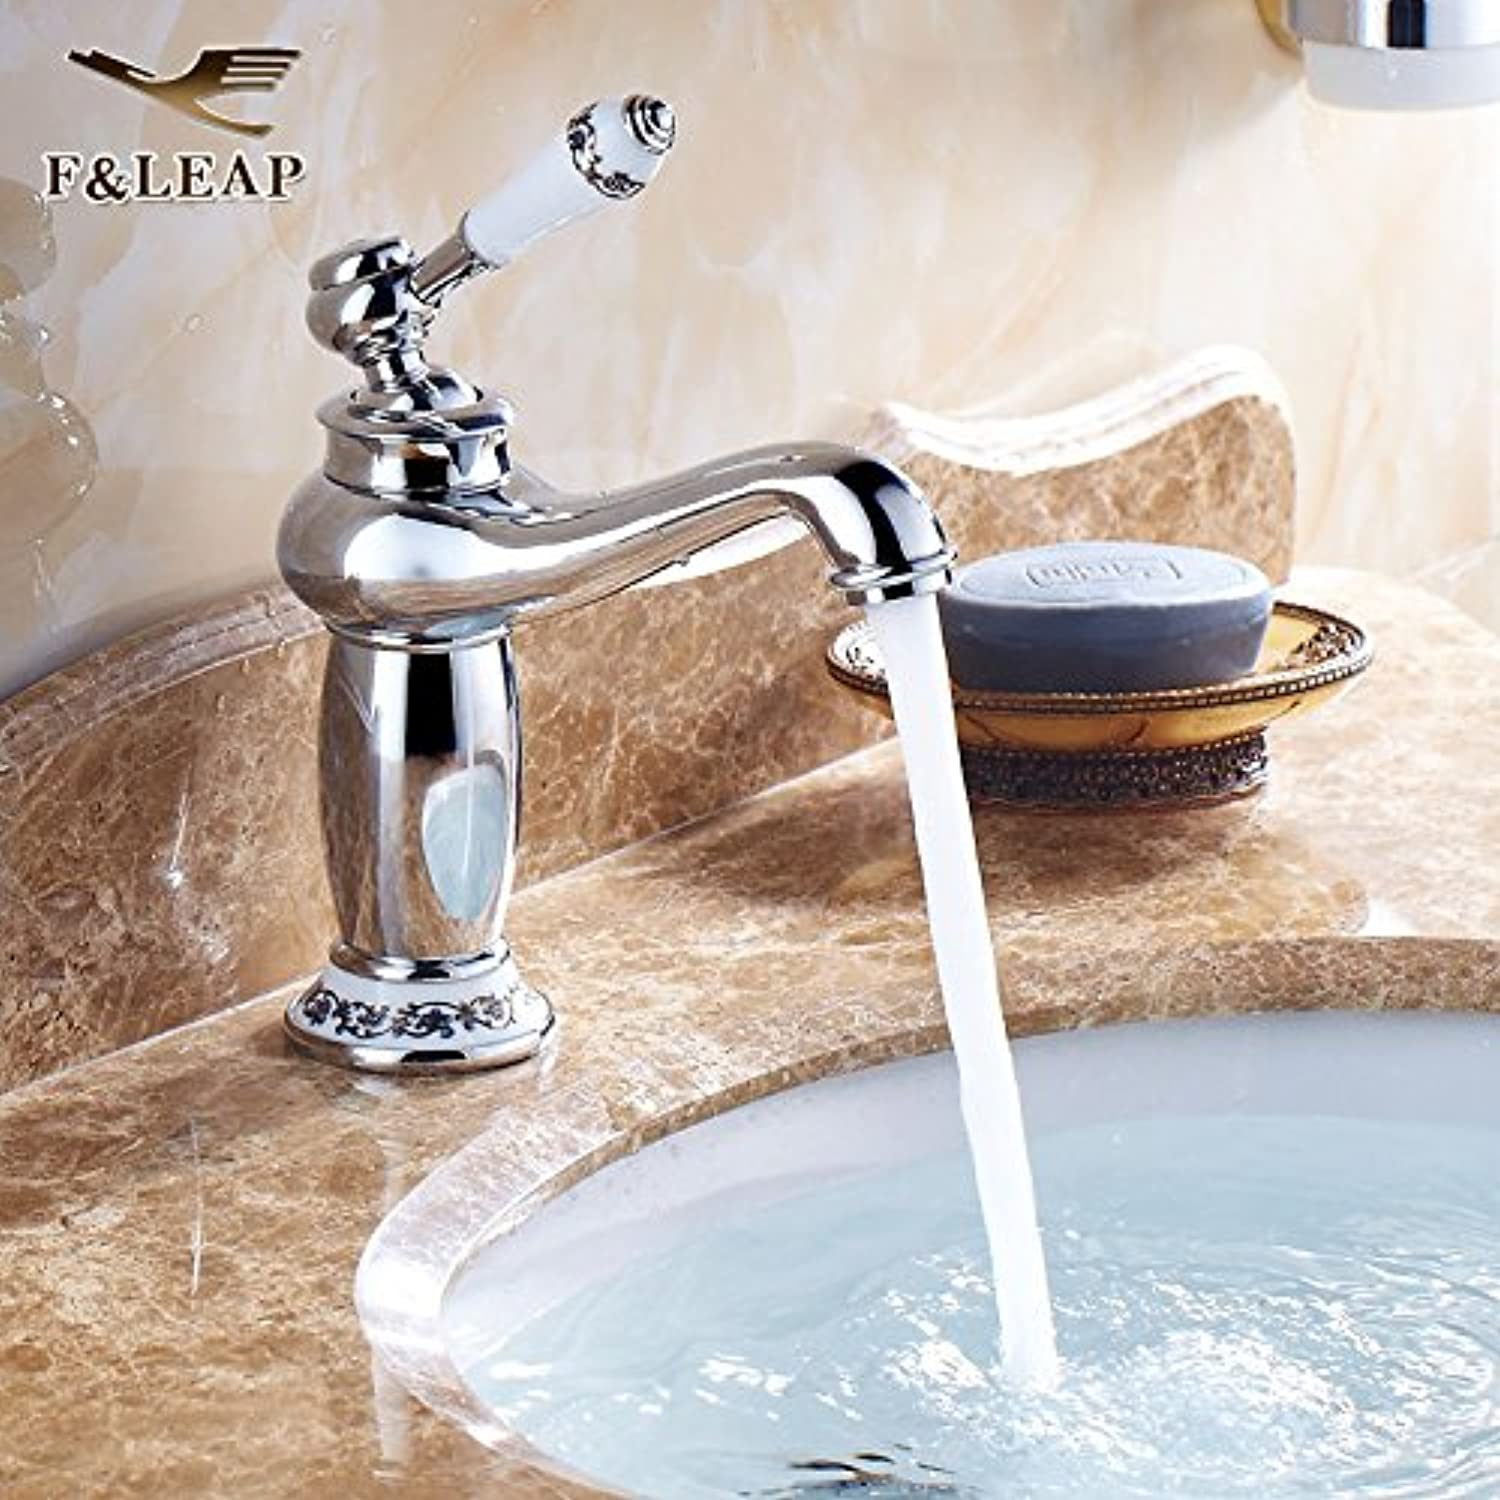 LHbox Basin Mixer Tap Bathroom Sink Faucet Continental hot and cold water taps gold pink gold bluee-tiled table top antique basin faucet, bluee-tiled God Light Fittings